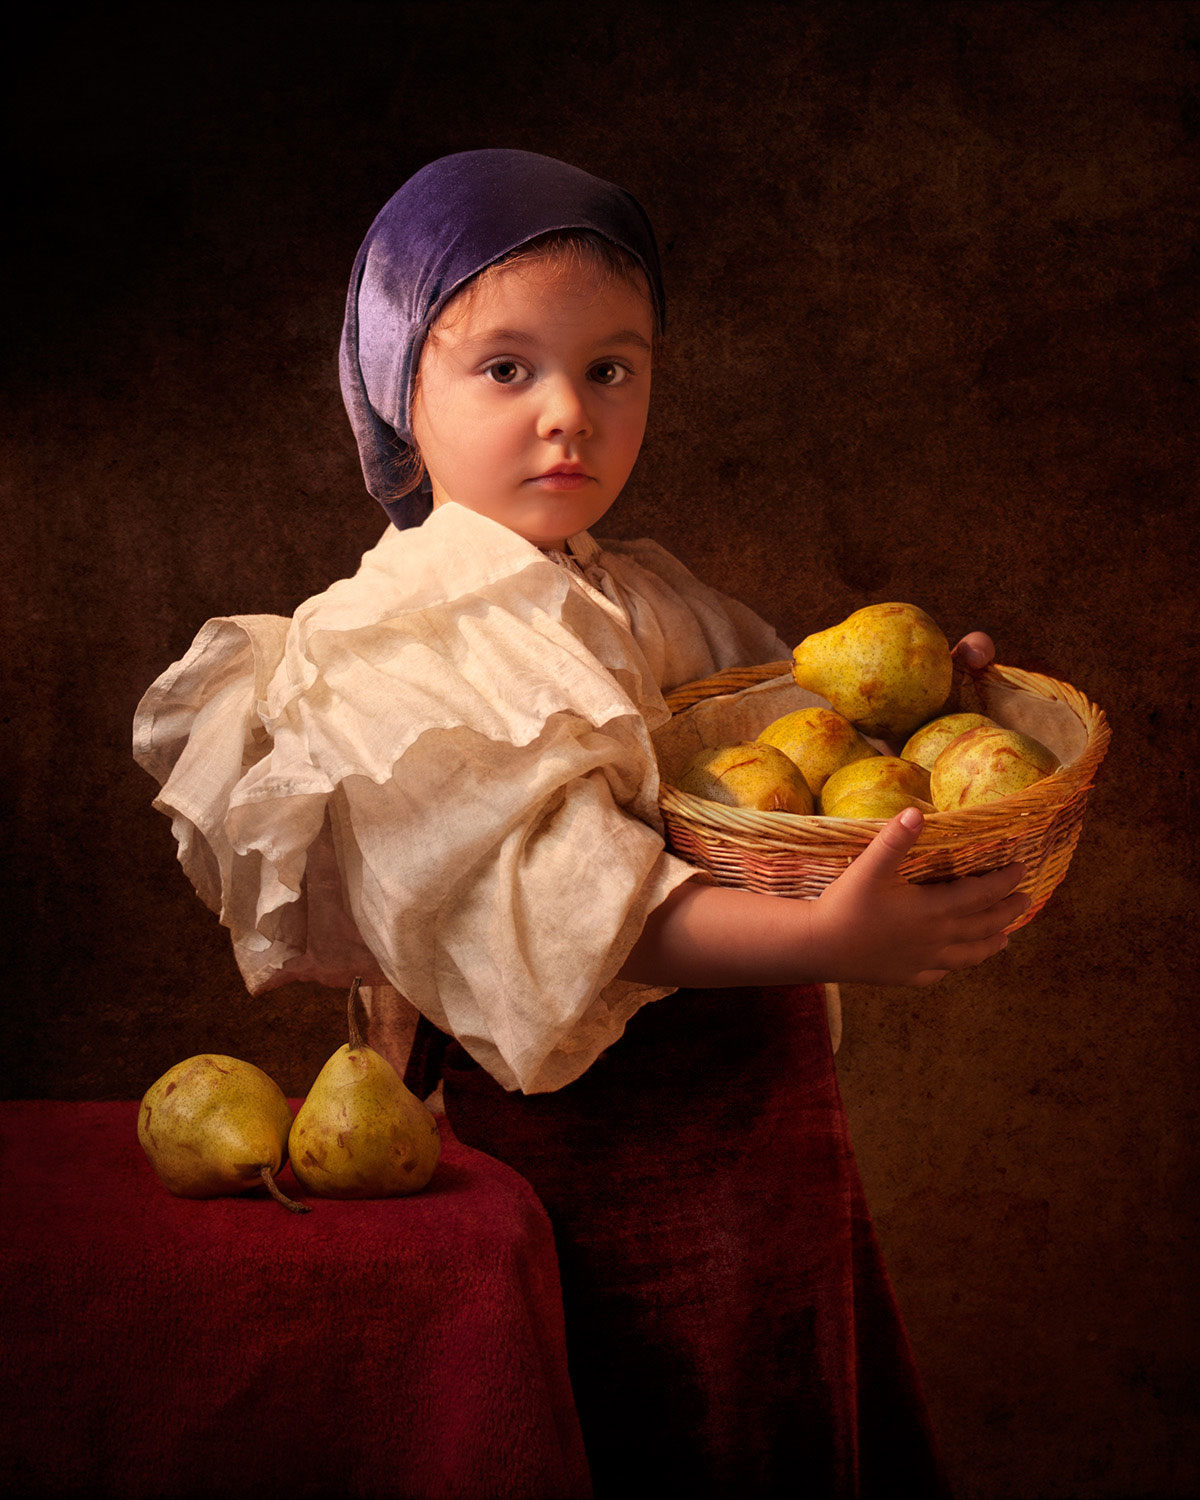 bill gekas portraits of his daughter as master paintings